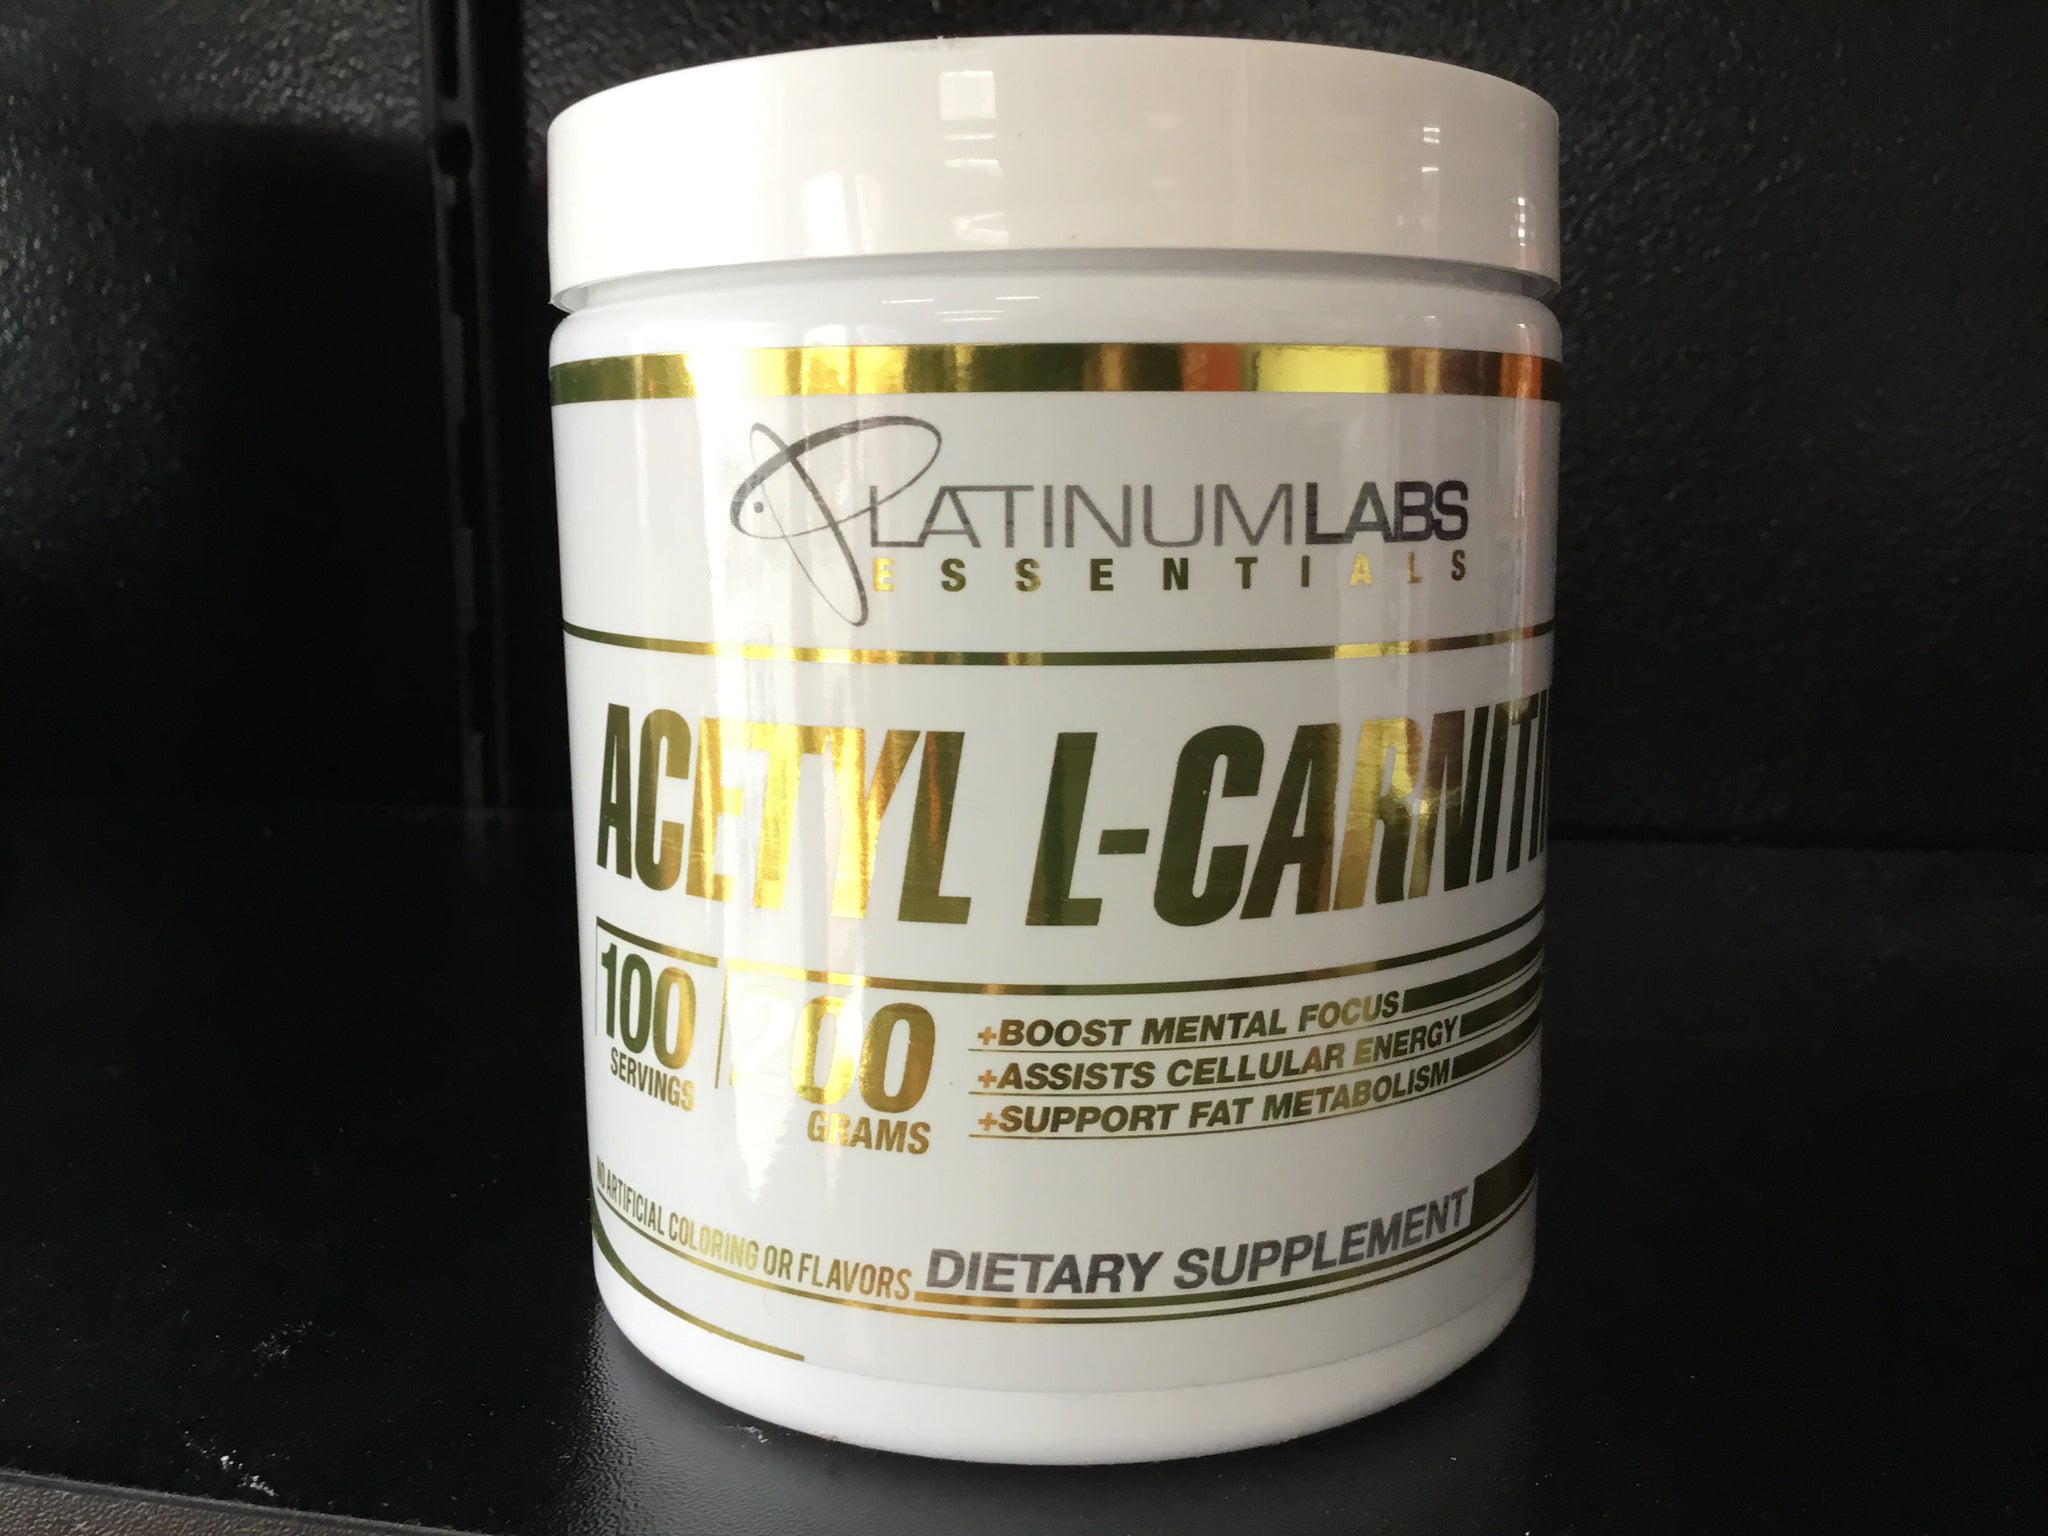 SUPPLEMENTS: ACETYL L-CARNITINE - Monsta Clothing Australia